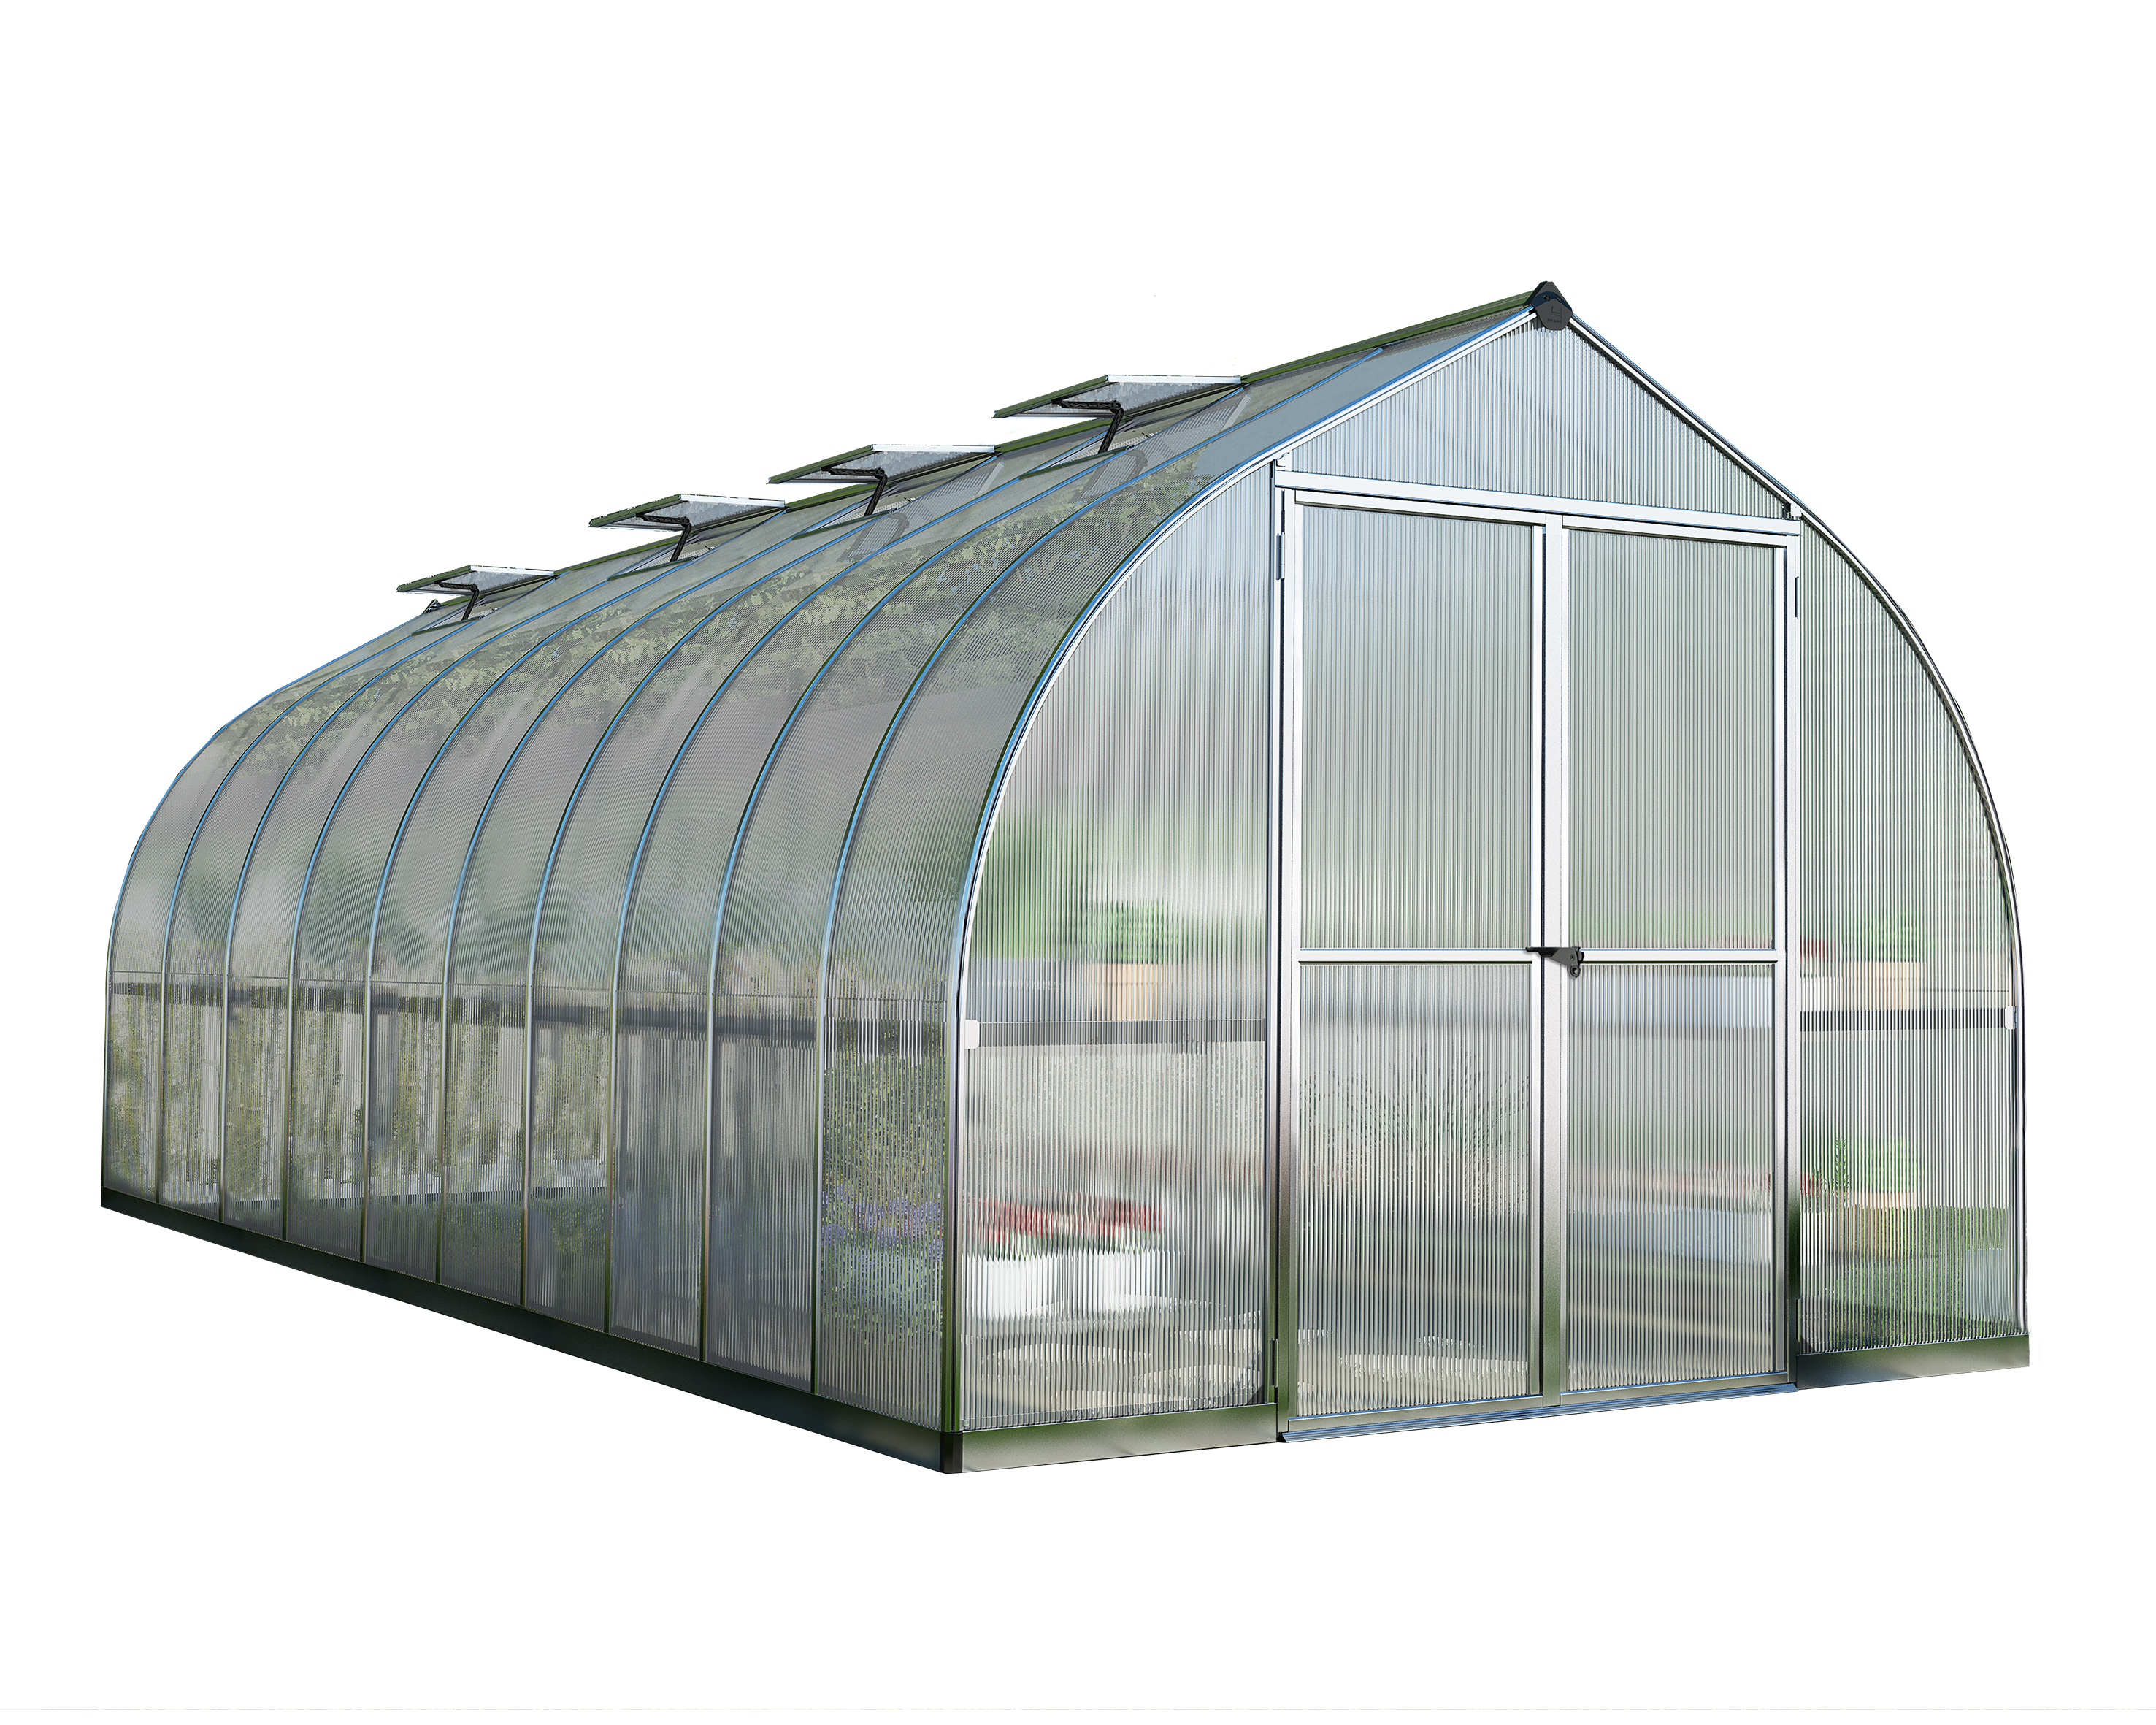 Palram Bella Hobby Greenhouse, 8' x 20' by Palram